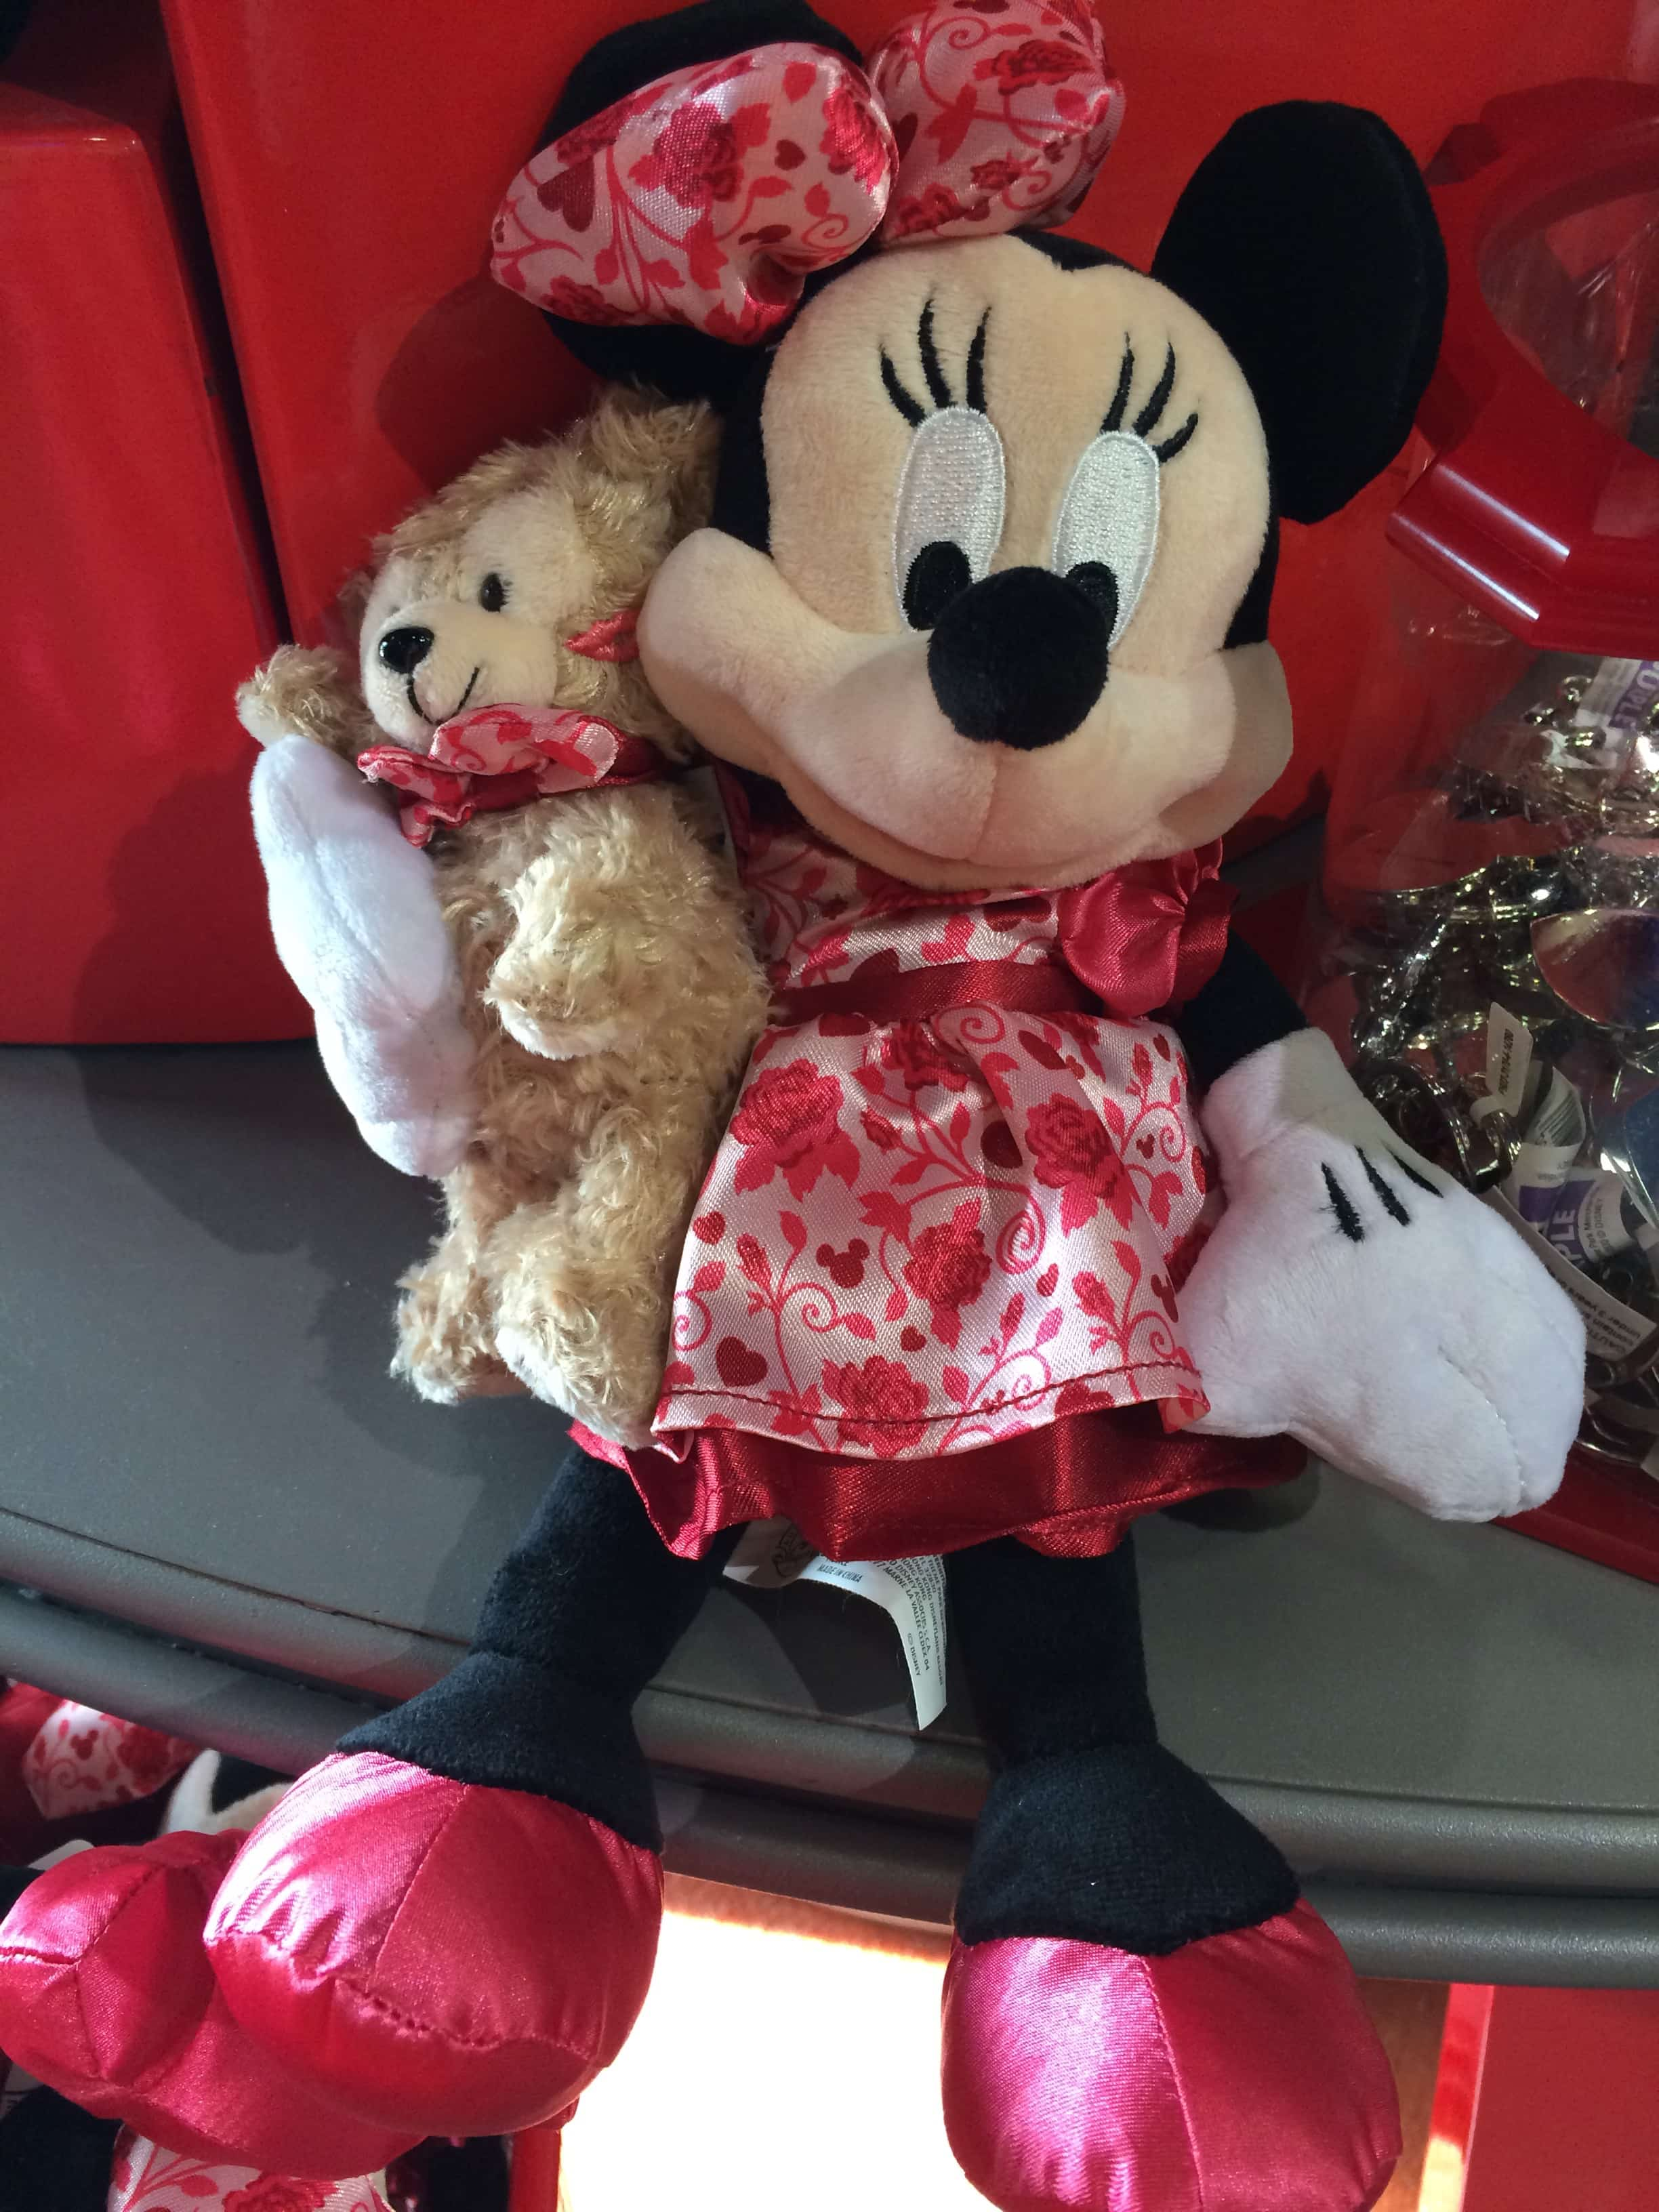 ... Minnie Mouse Plush Toy With Teddy Bear Valentines Day Cupid ...